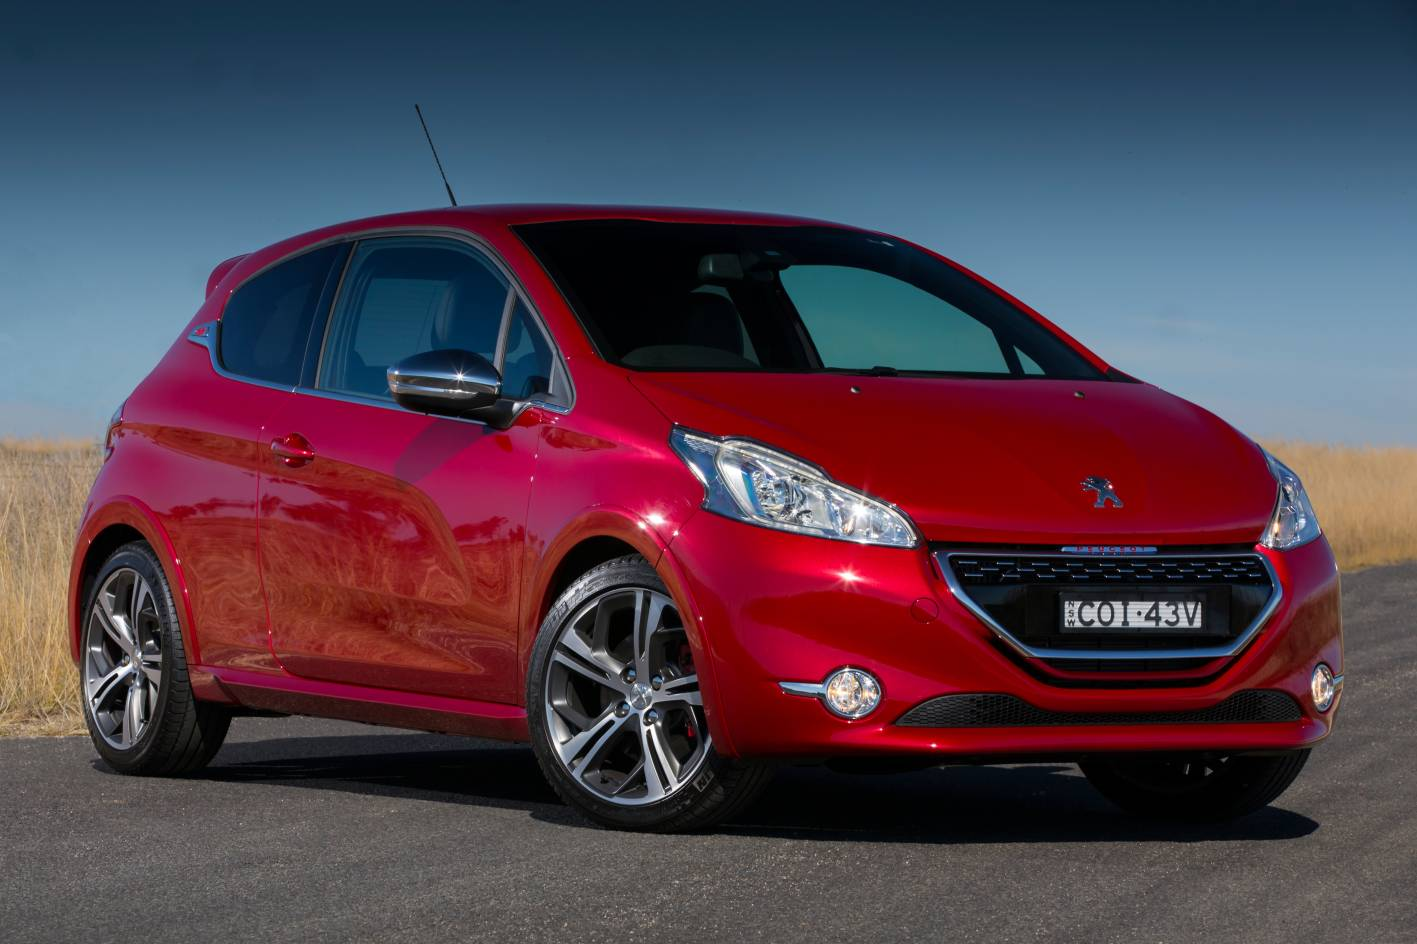 peugeot 208 gti now on sale in australia from 29 990. Black Bedroom Furniture Sets. Home Design Ideas